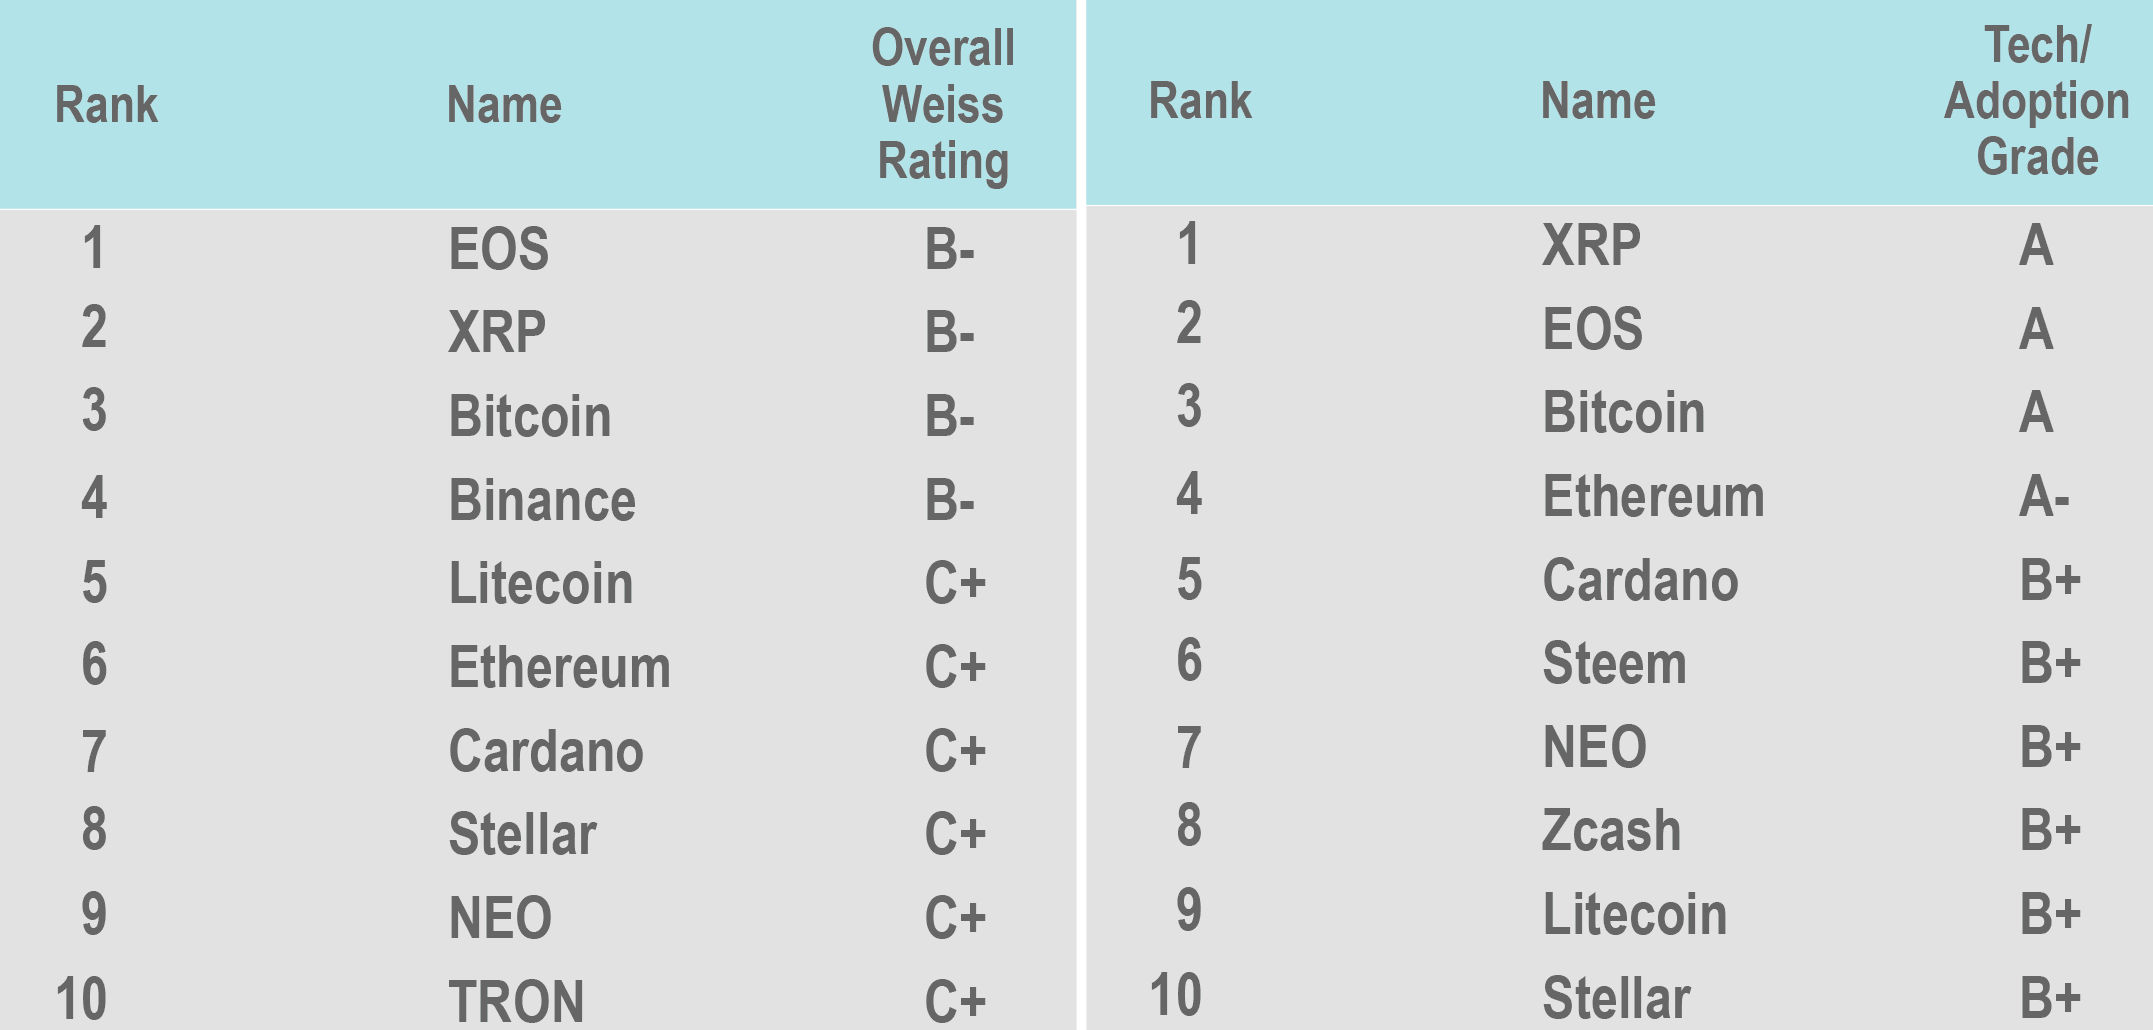 Weiss Ratings: EOS is the best cryptocurrency, then Ripple, THEN Bitcoin